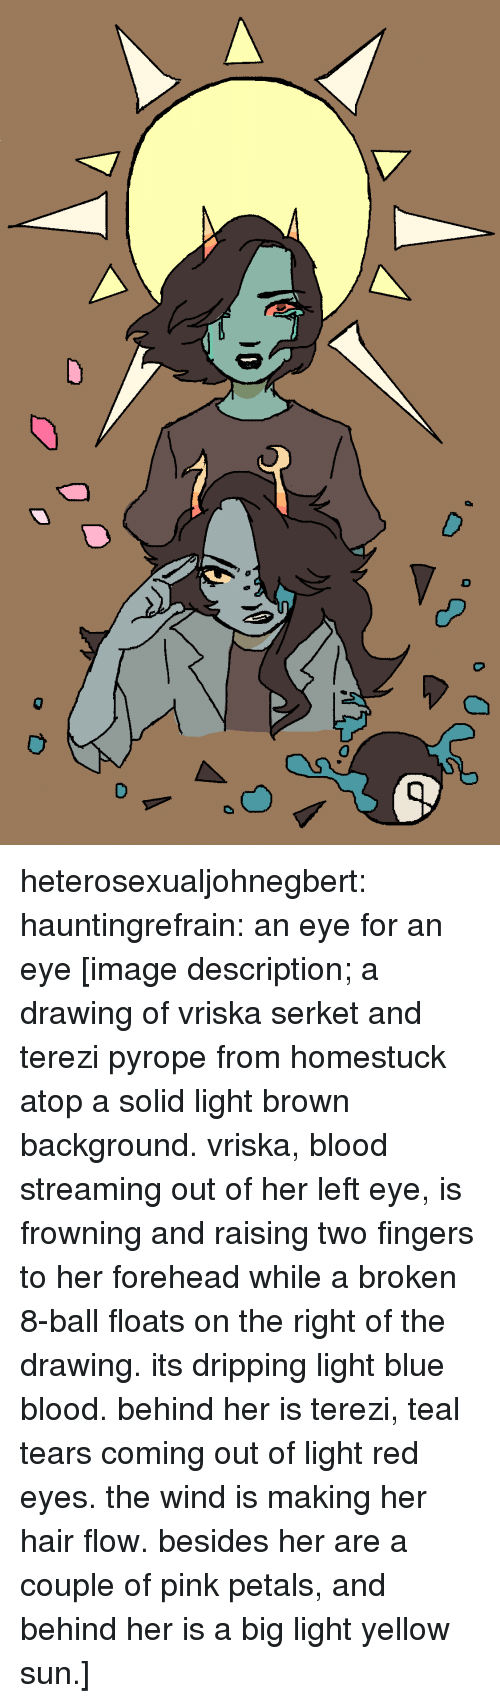 Frowning: heterosexualjohnegbert:  hauntingrefrain: an eye for an eye [image description; a drawing of vriska serket and terezi pyrope from homestuck atop a solid light brown background. vriska, blood streaming out of her left eye, is frowning and raising two fingers to her forehead while a broken 8-ball floats on the right of the drawing. its dripping light blue blood. behind her is terezi, teal tears coming out of light red eyes. the wind is making her hair flow. besides her are a couple of pink petals, and behind her is a big light yellow sun.]